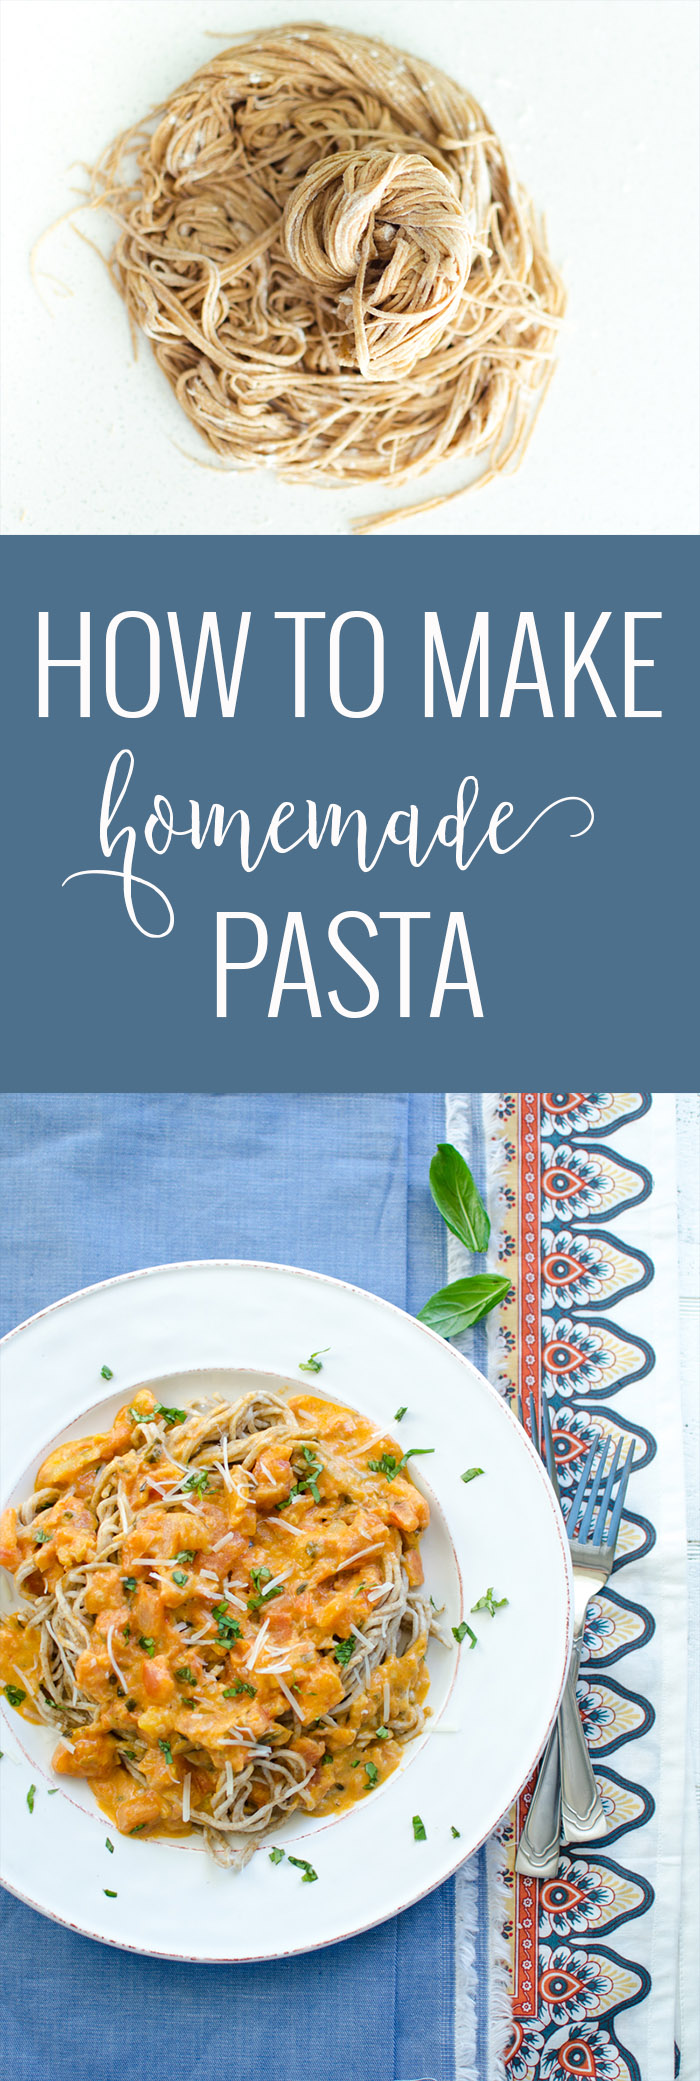 How To Make Pasta With KitchenAid Attachments